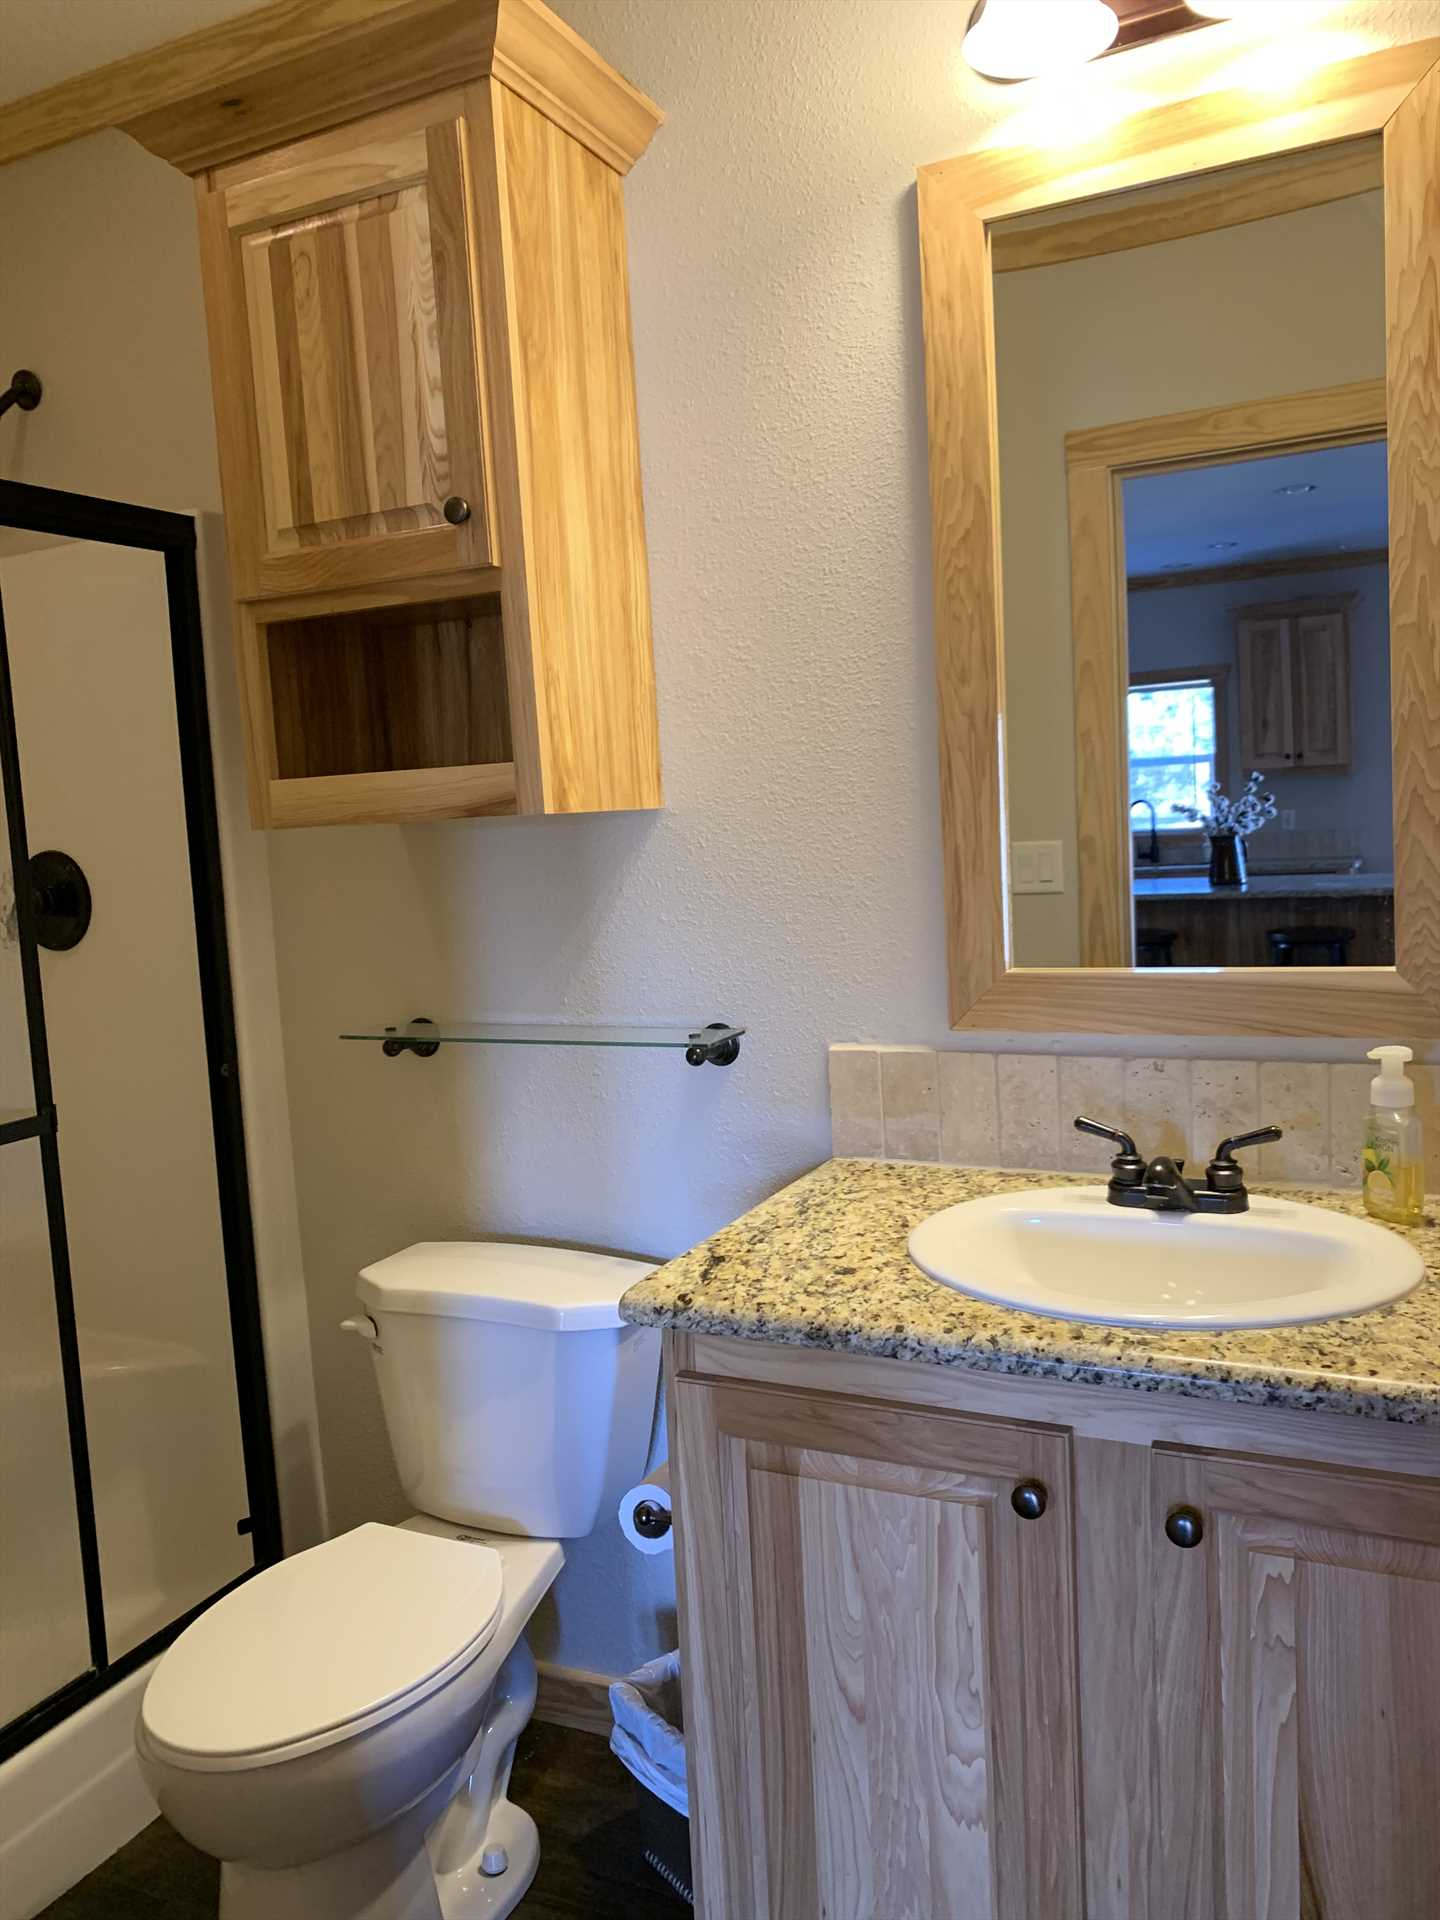 Both bathrooms here are immaculately clean, and the second bath (pictured here) includes a nice mirrored vanity and fresh linens.